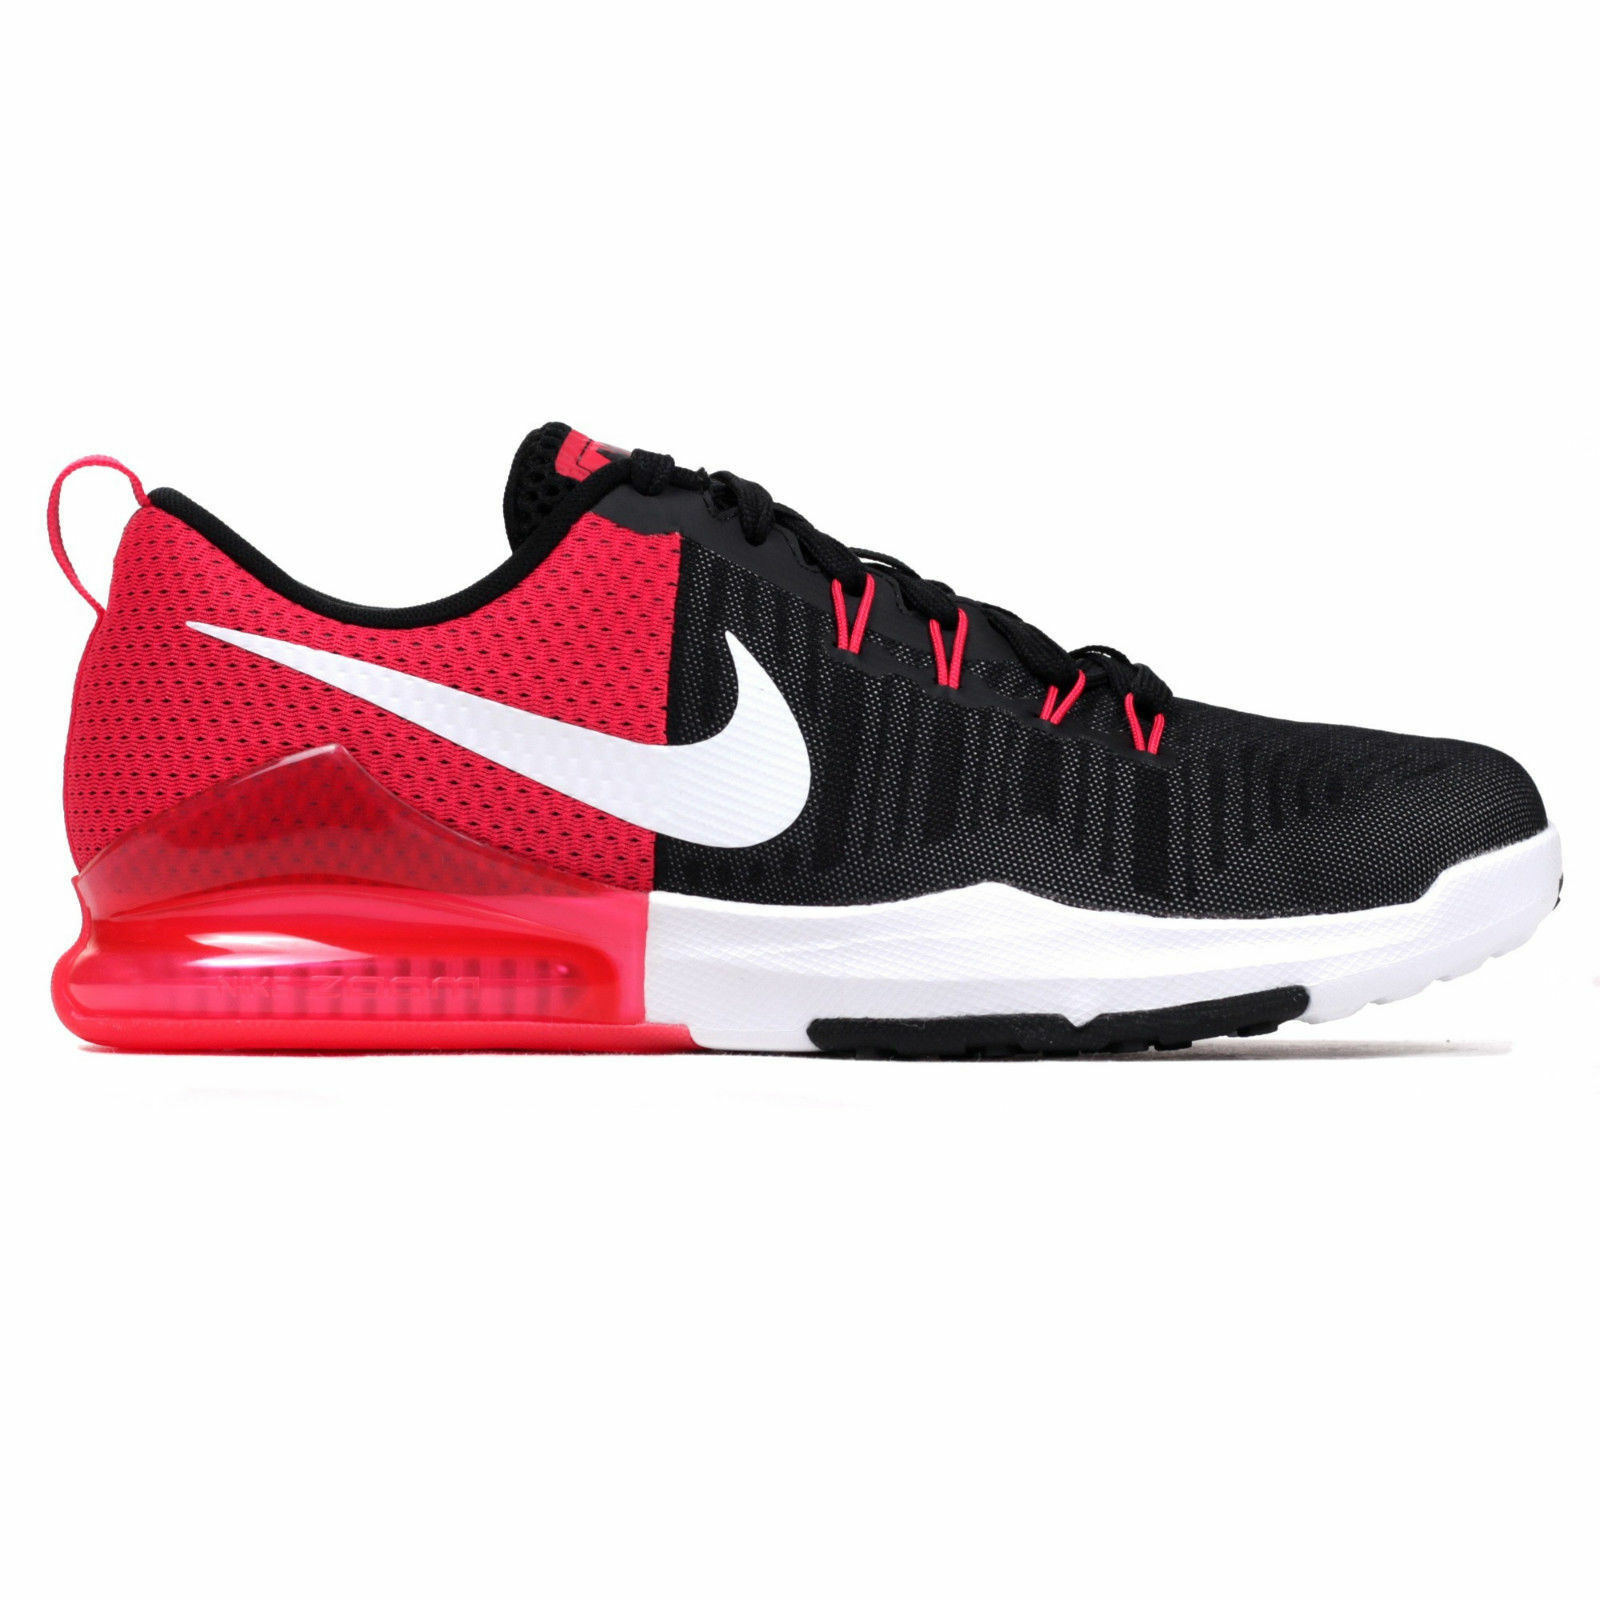 Men's Nike Zoom Train Action Training shoes, 852438 002 Size 10 Black White Wolf